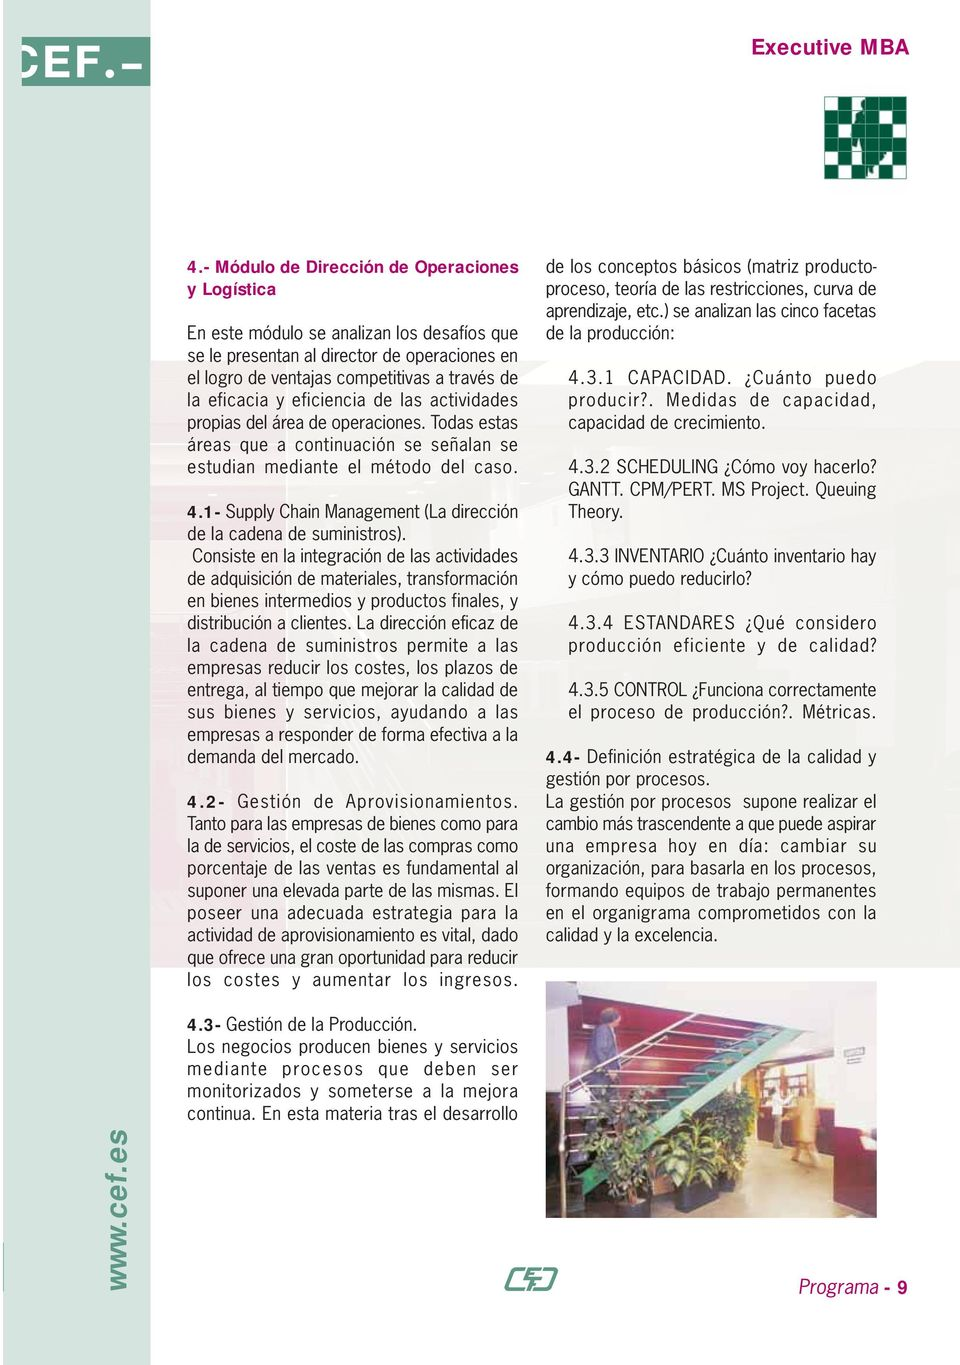 1- Supply Chain Management (La dirección de la cadena de suministros).